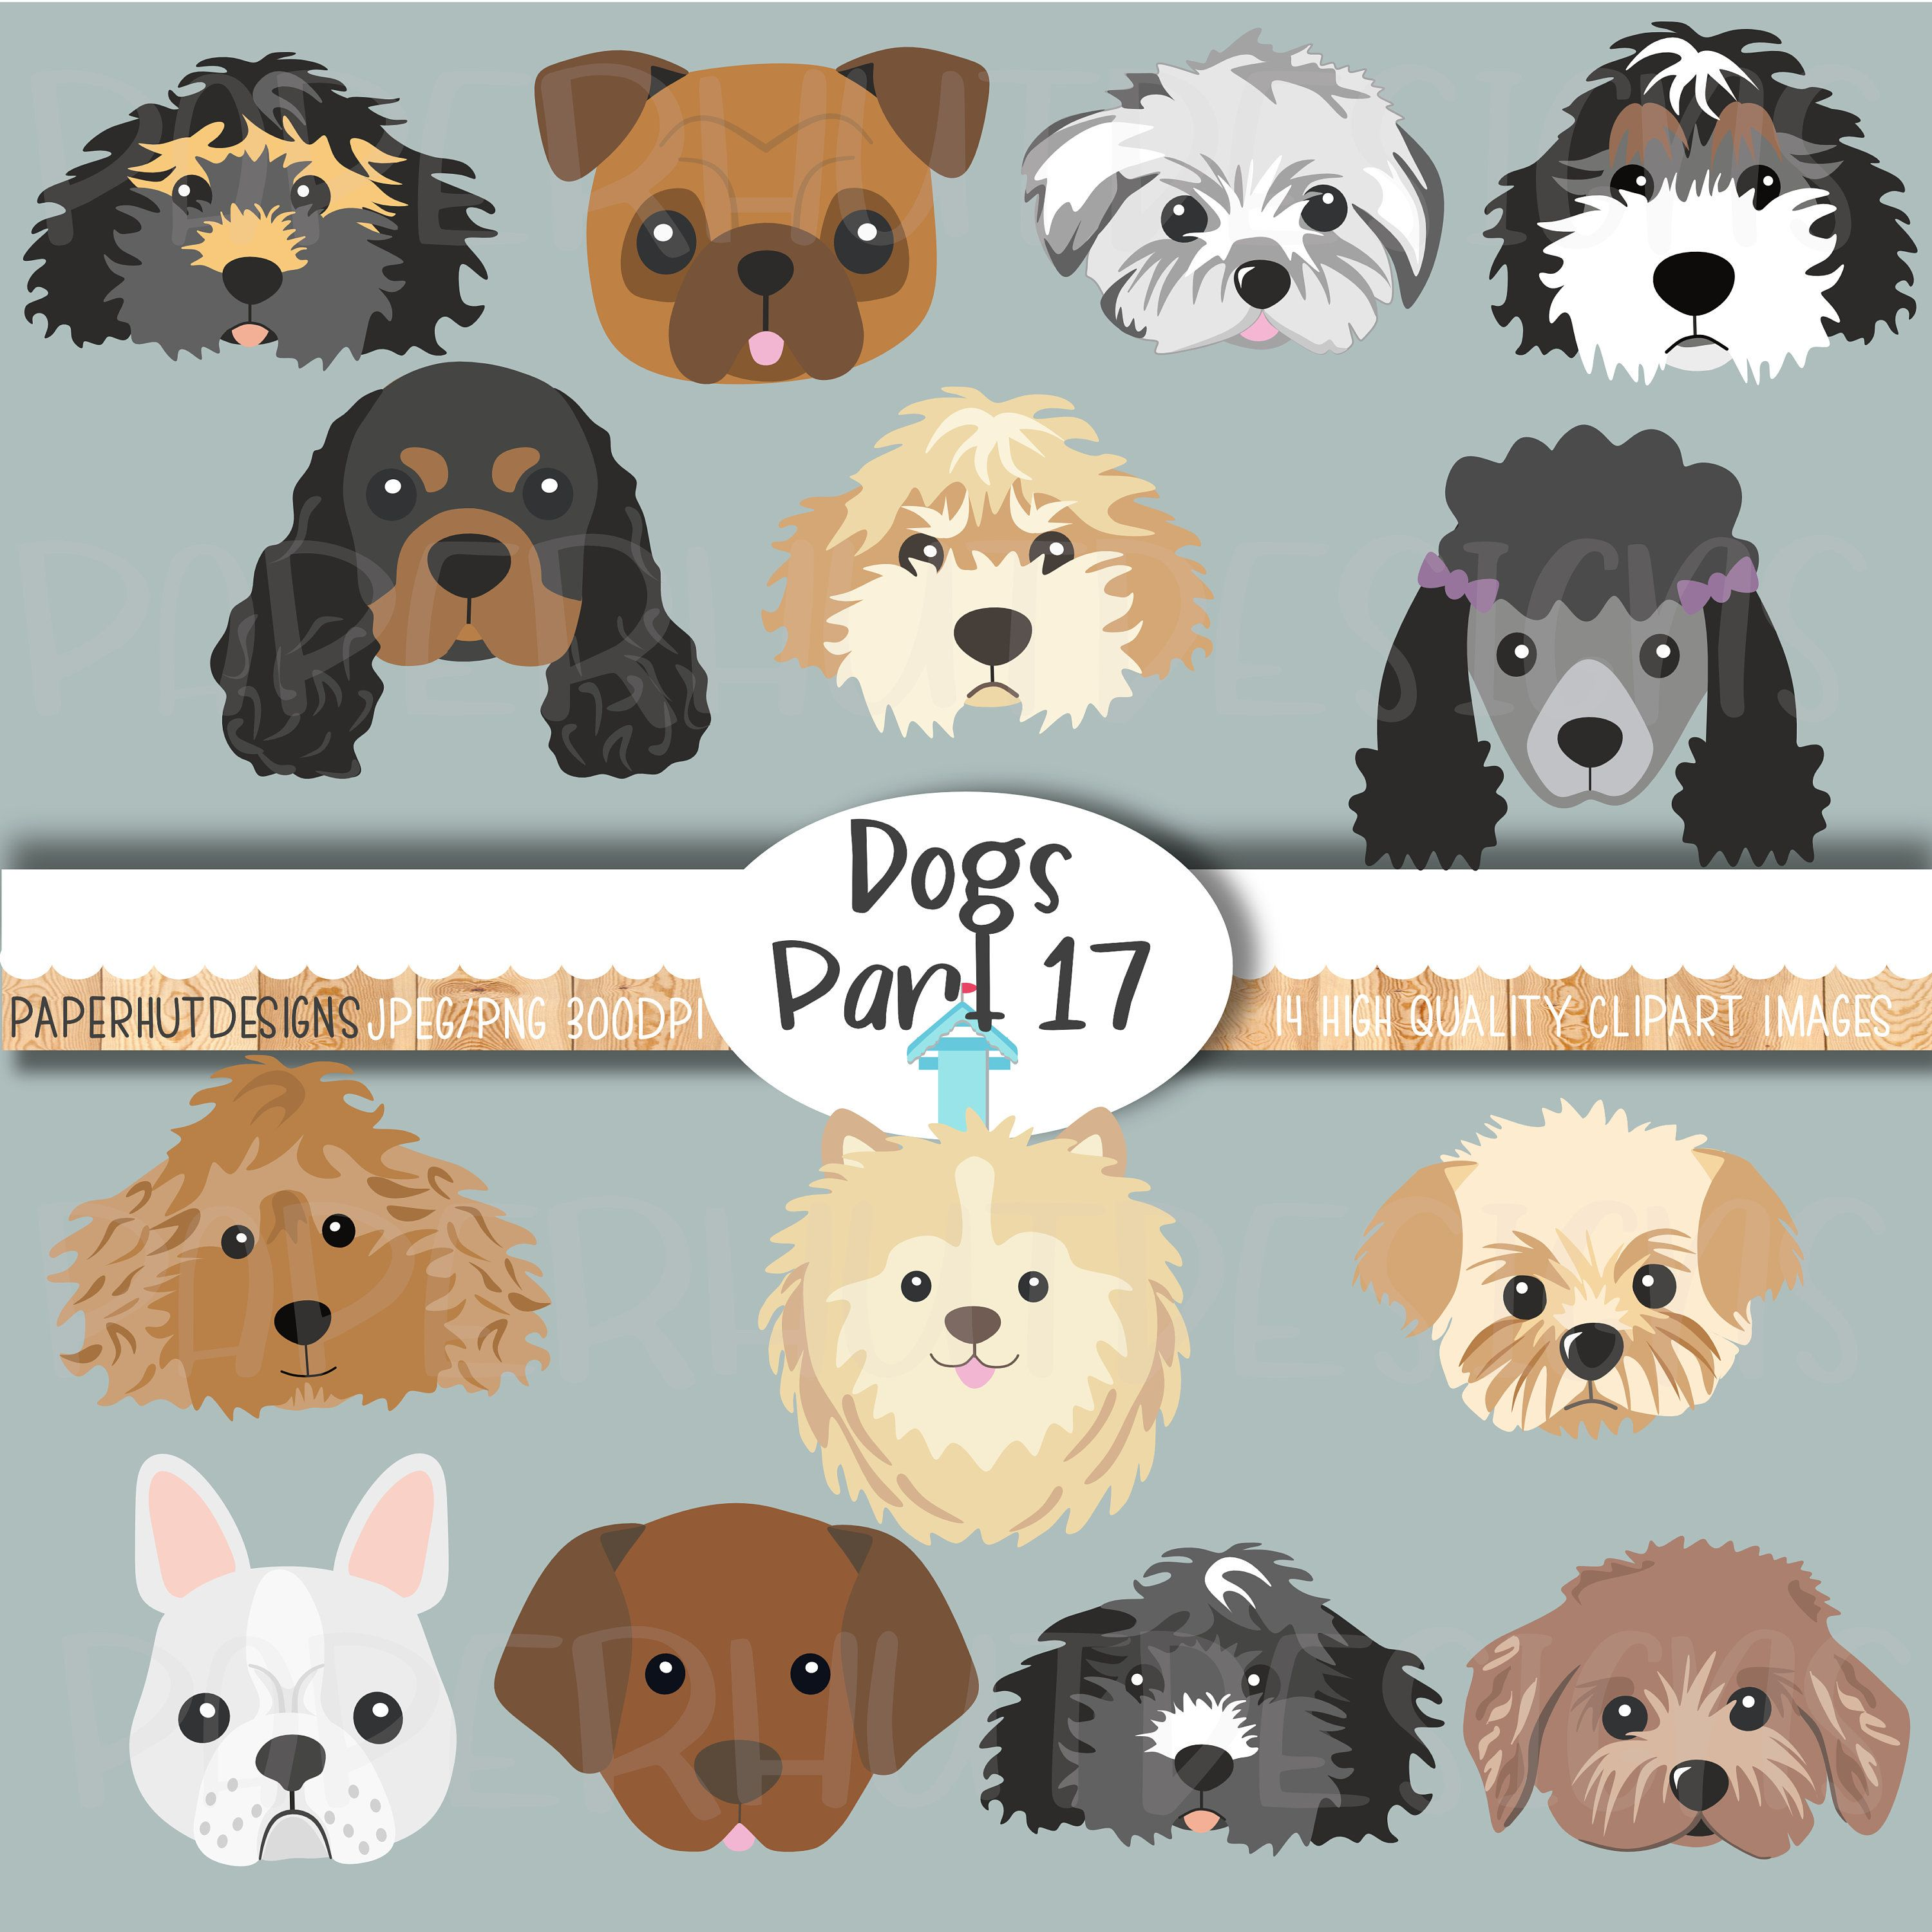 Dog Faces Clipart Cute Puppy Faces Clipart Dog Clip Art Puppy Etsy Dog Clip Art Clip Art Dog Face